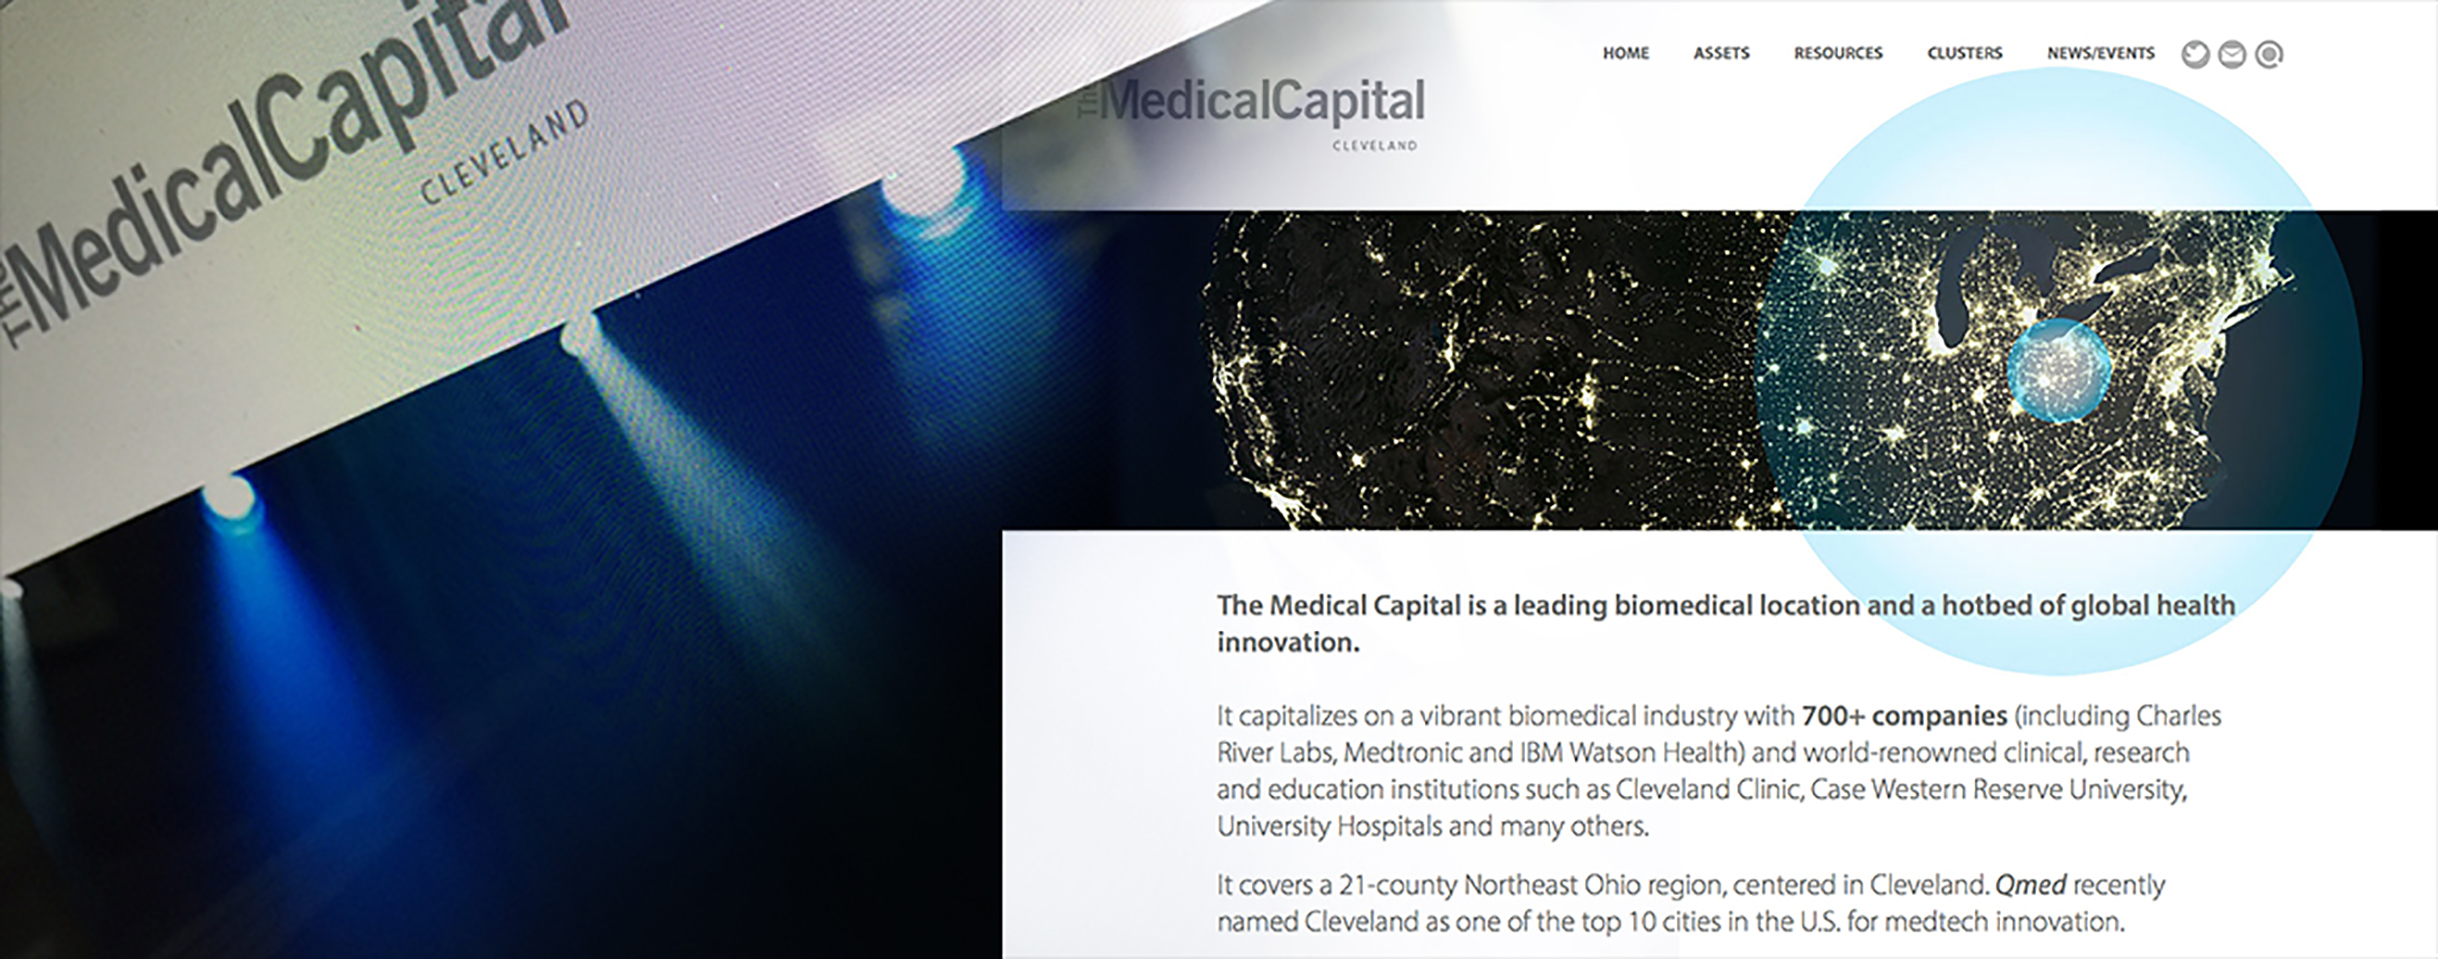 The Medical Capital